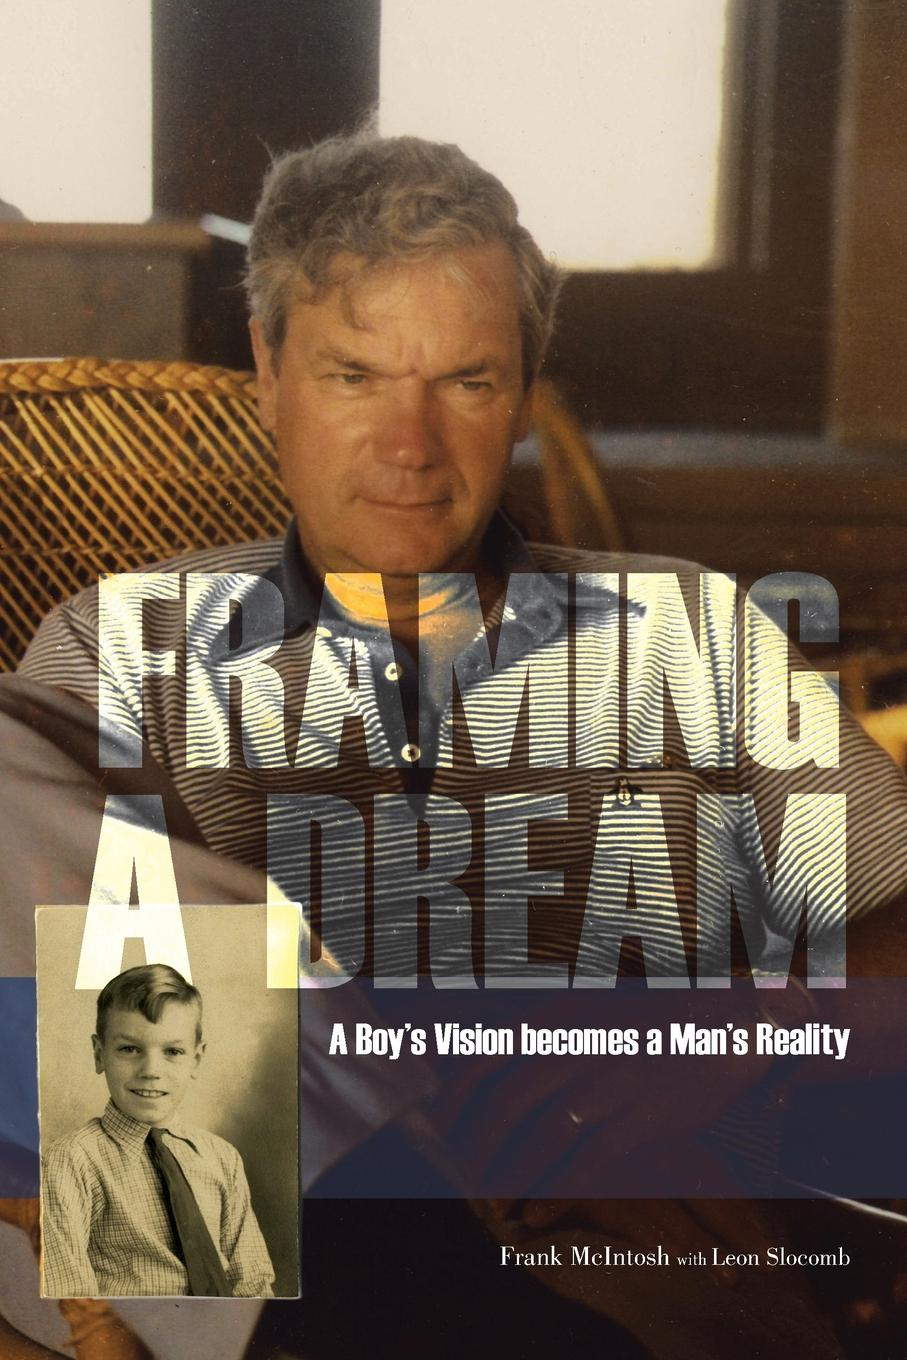 Frank McIntosh Framing A Dream. A Boy's Vision becomes a Man's Reality